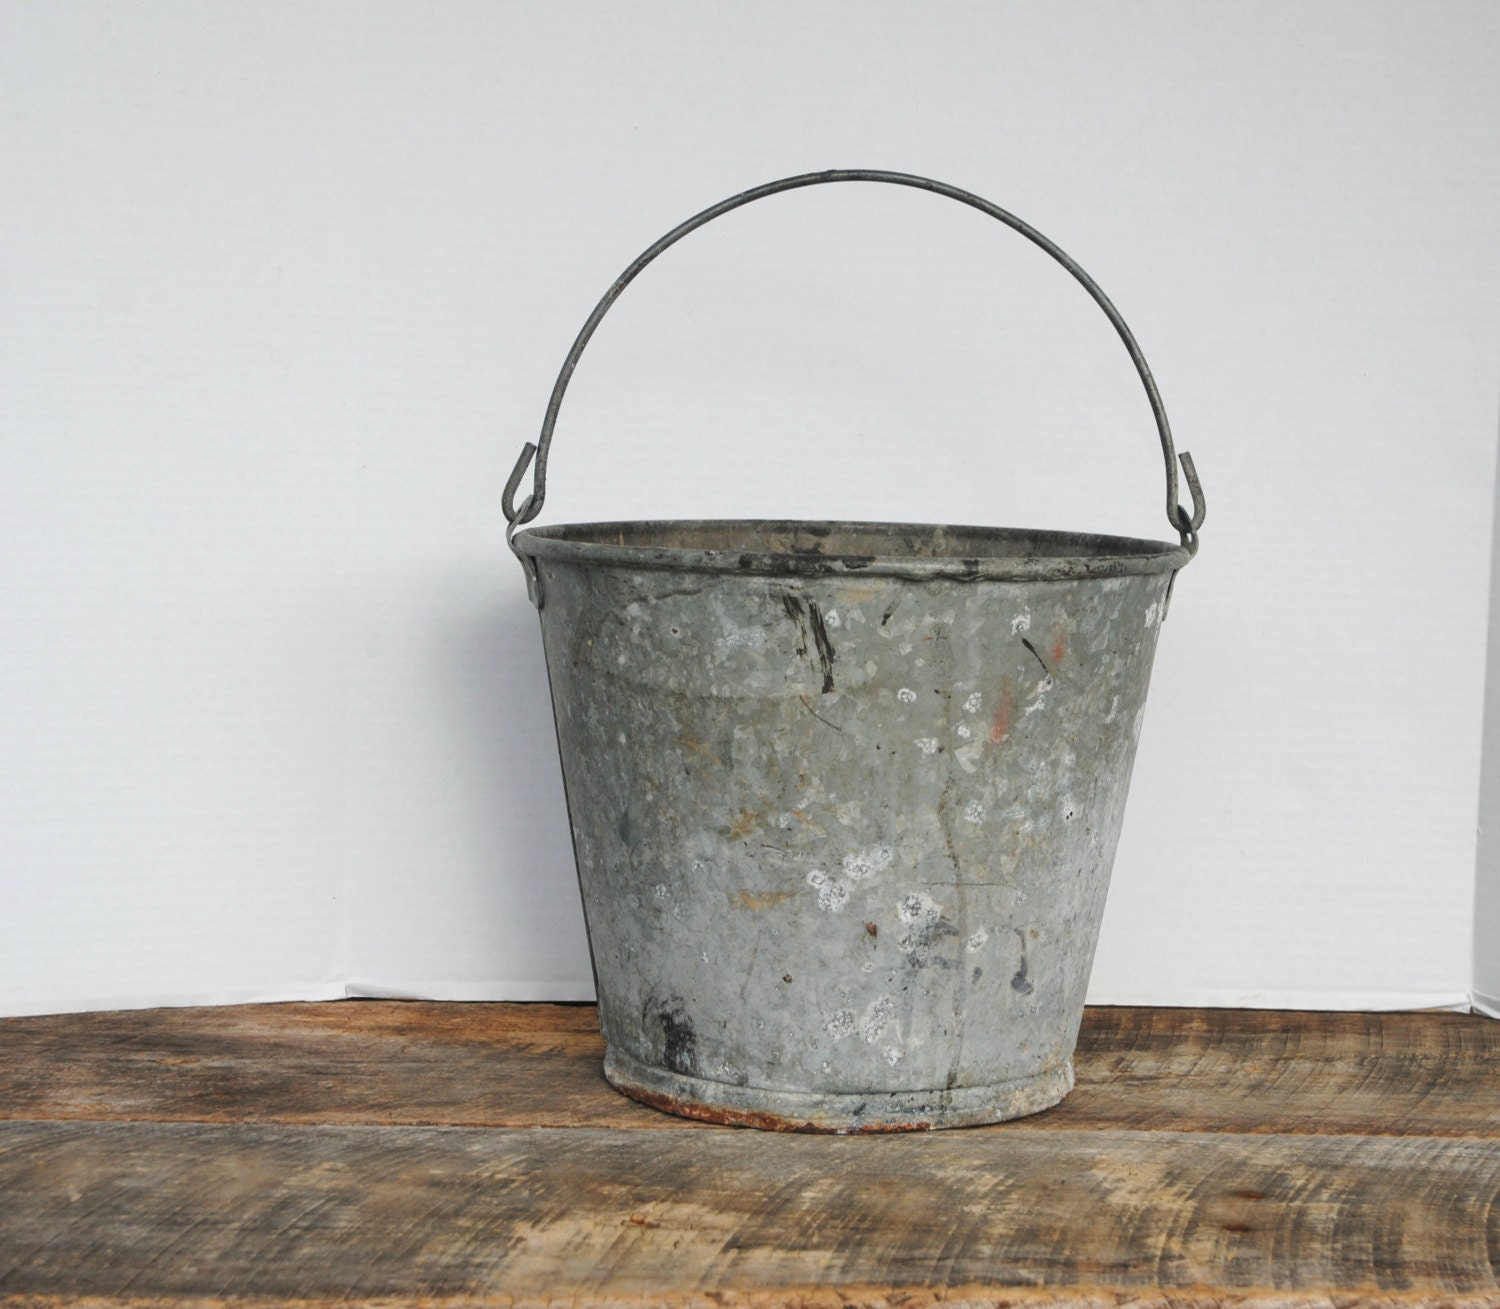 vintage galvanized pail or bucket with handle outdoor garden